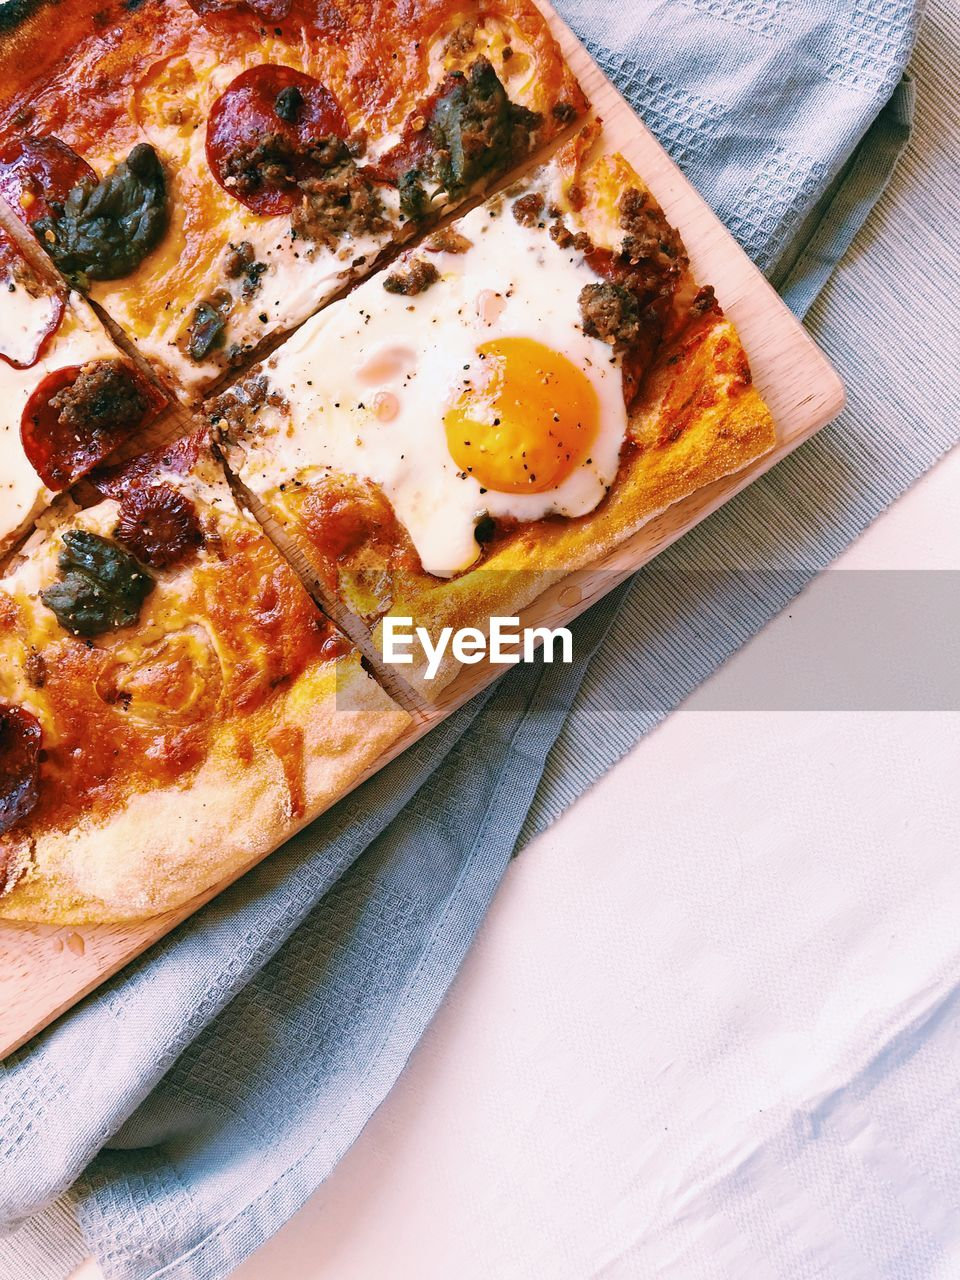 food, food and drink, pizza, ready-to-eat, still life, table, freshness, indoors, unhealthy eating, high angle view, no people, italian food, meal, close-up, egg, indulgence, wood - material, dairy product, fried egg, breakfast, snack, temptation